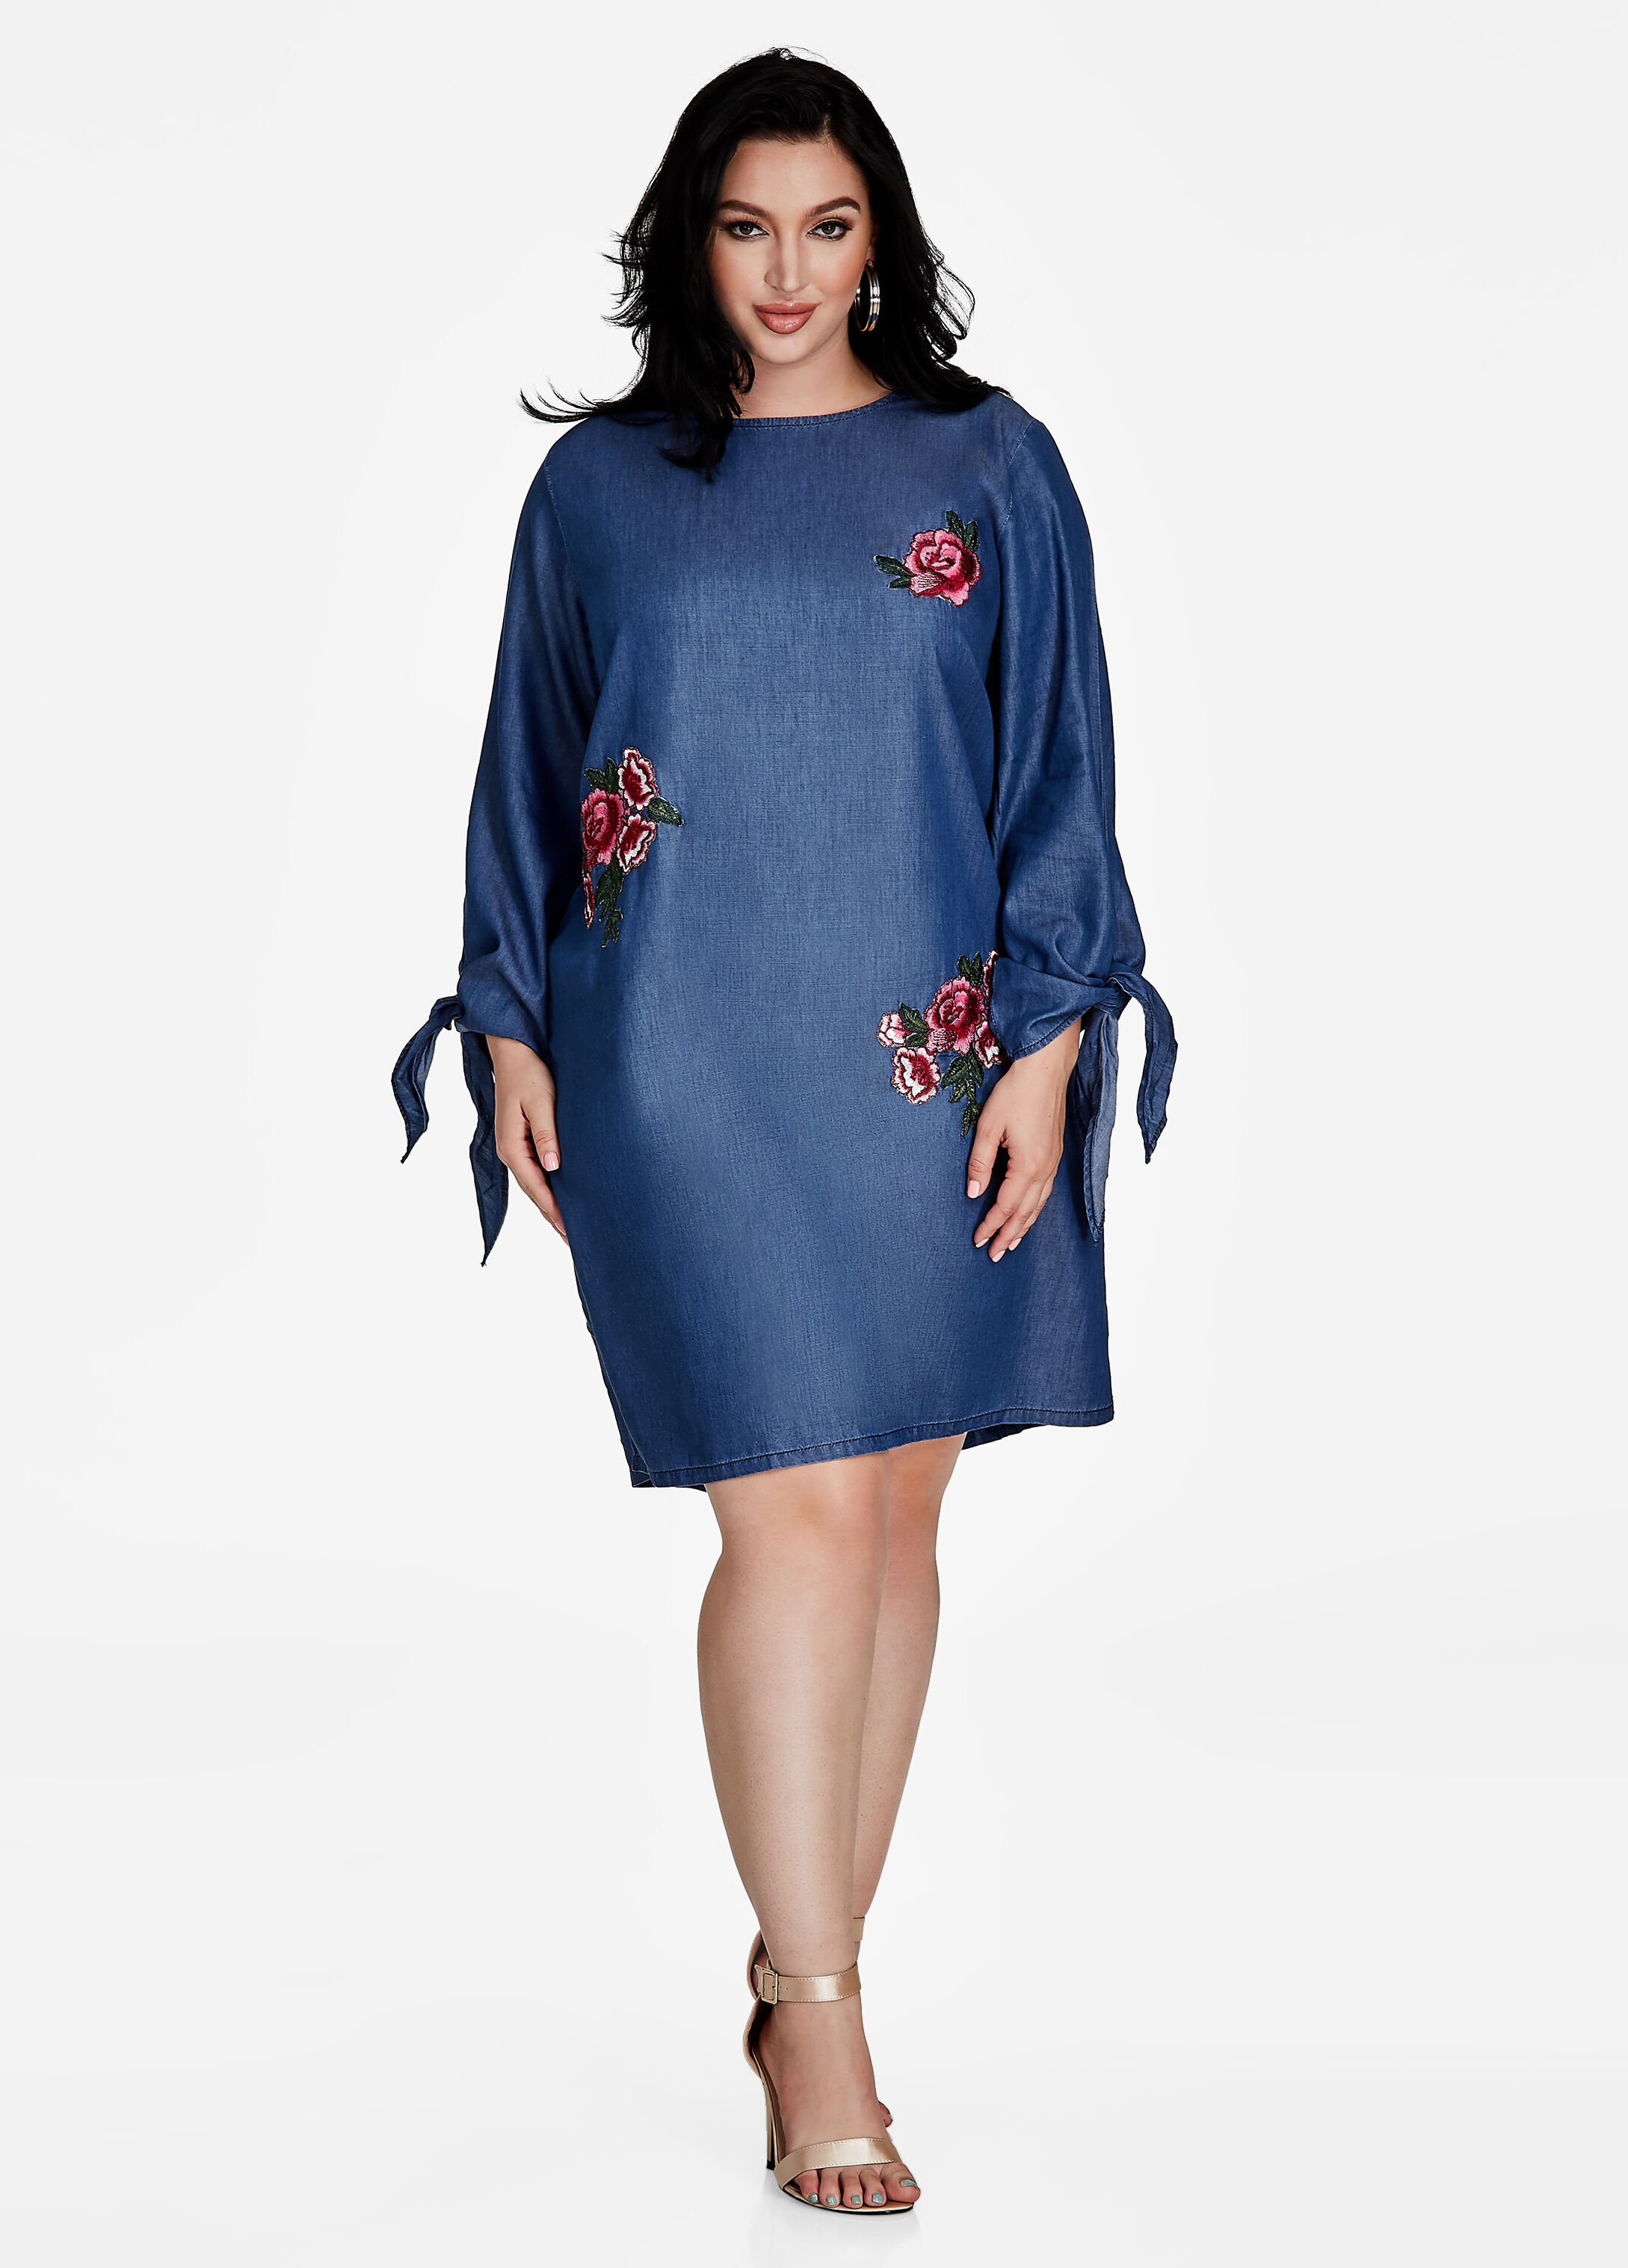 Floral Applique Denim Dress